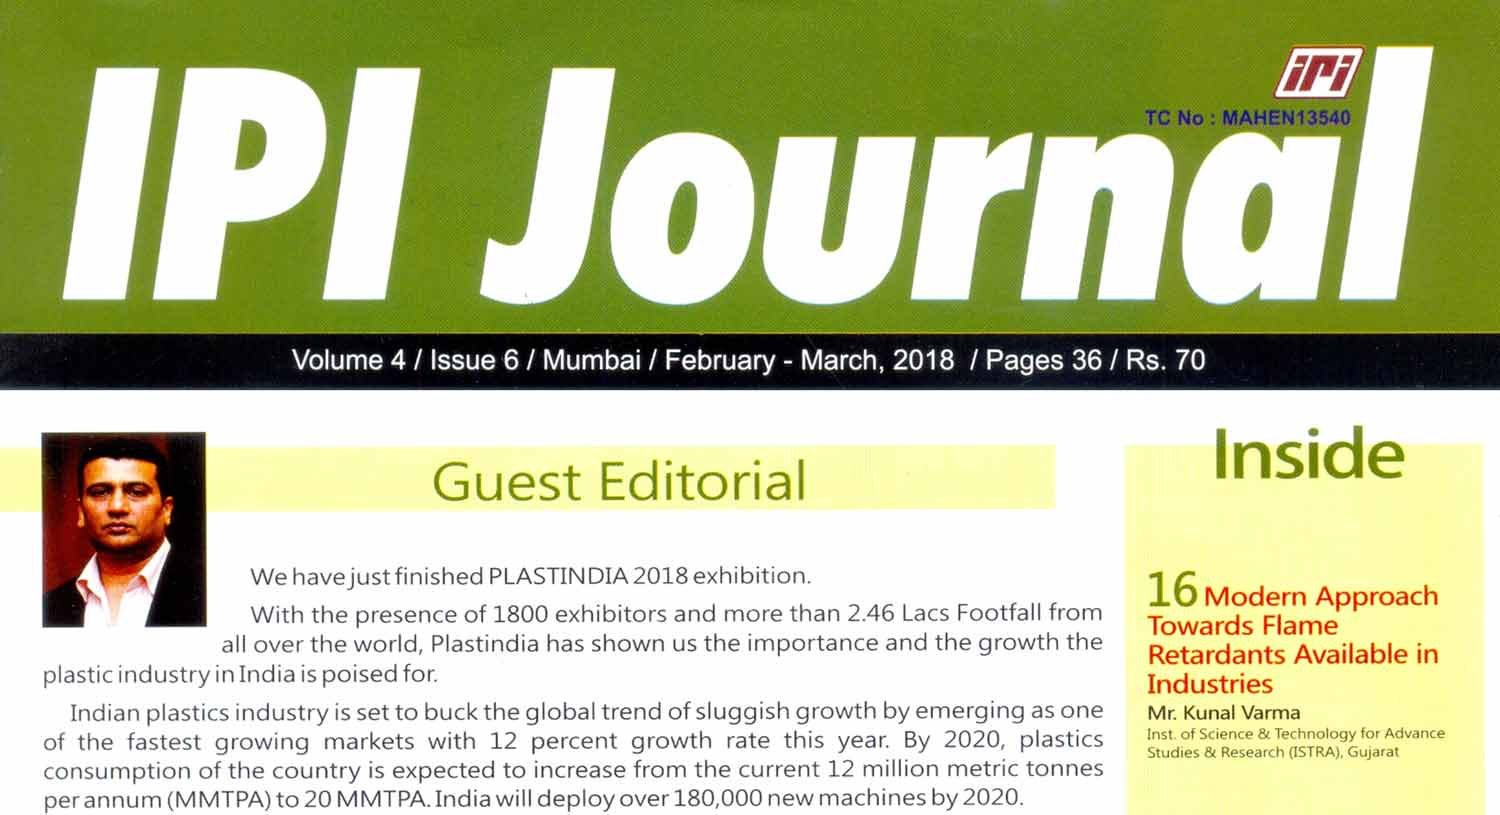 Our MD, Mr. Ramesh Parasuraman was invited as a Guest Editor for IPI Journal | February - March 2018 Issue | Allied Solutions India